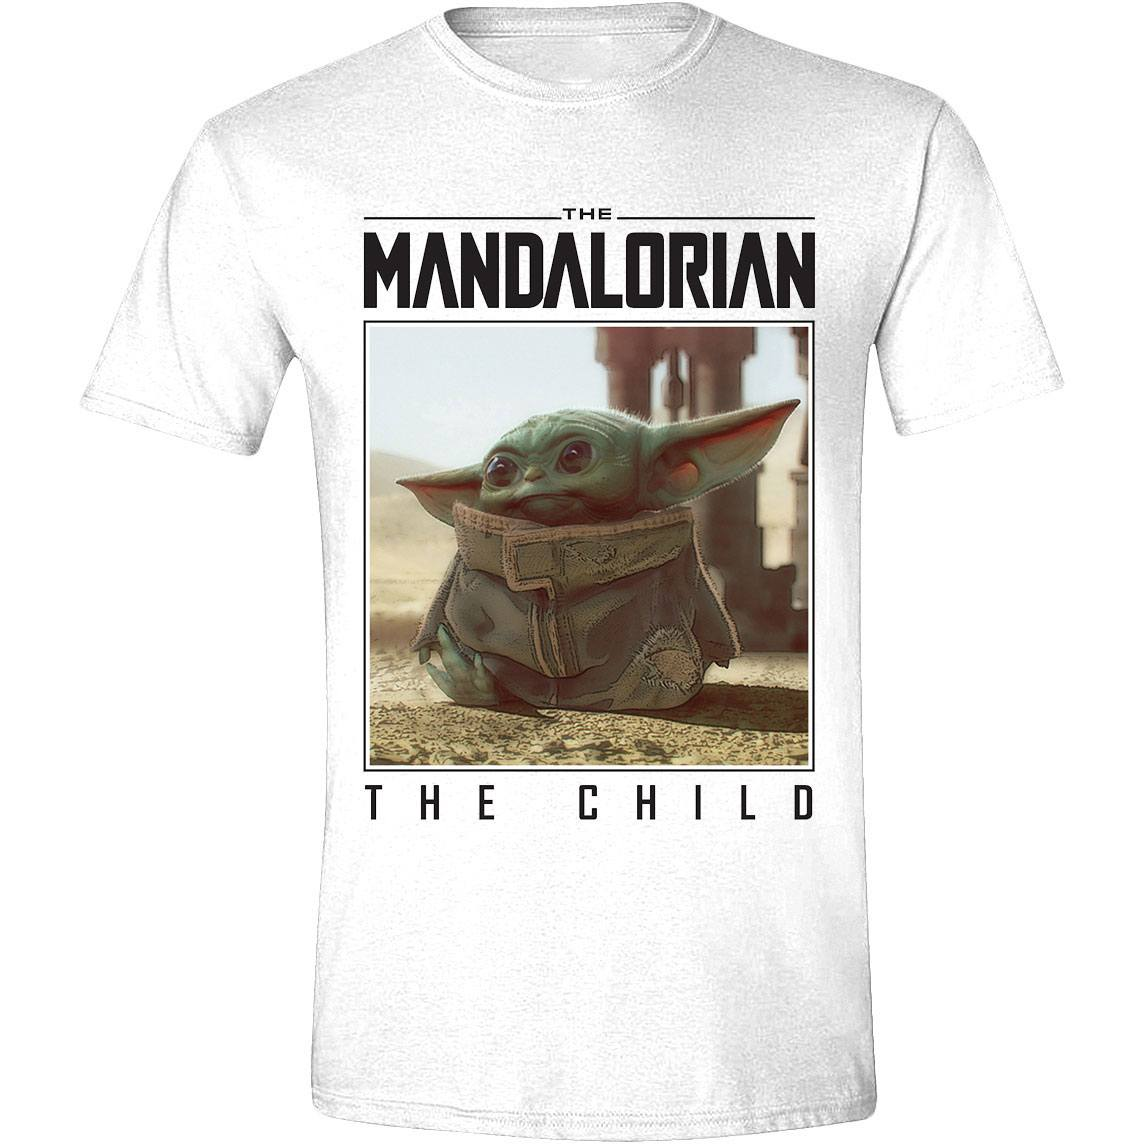 Star Wars The Mandalorian T-Shirt The Child Photo (S)